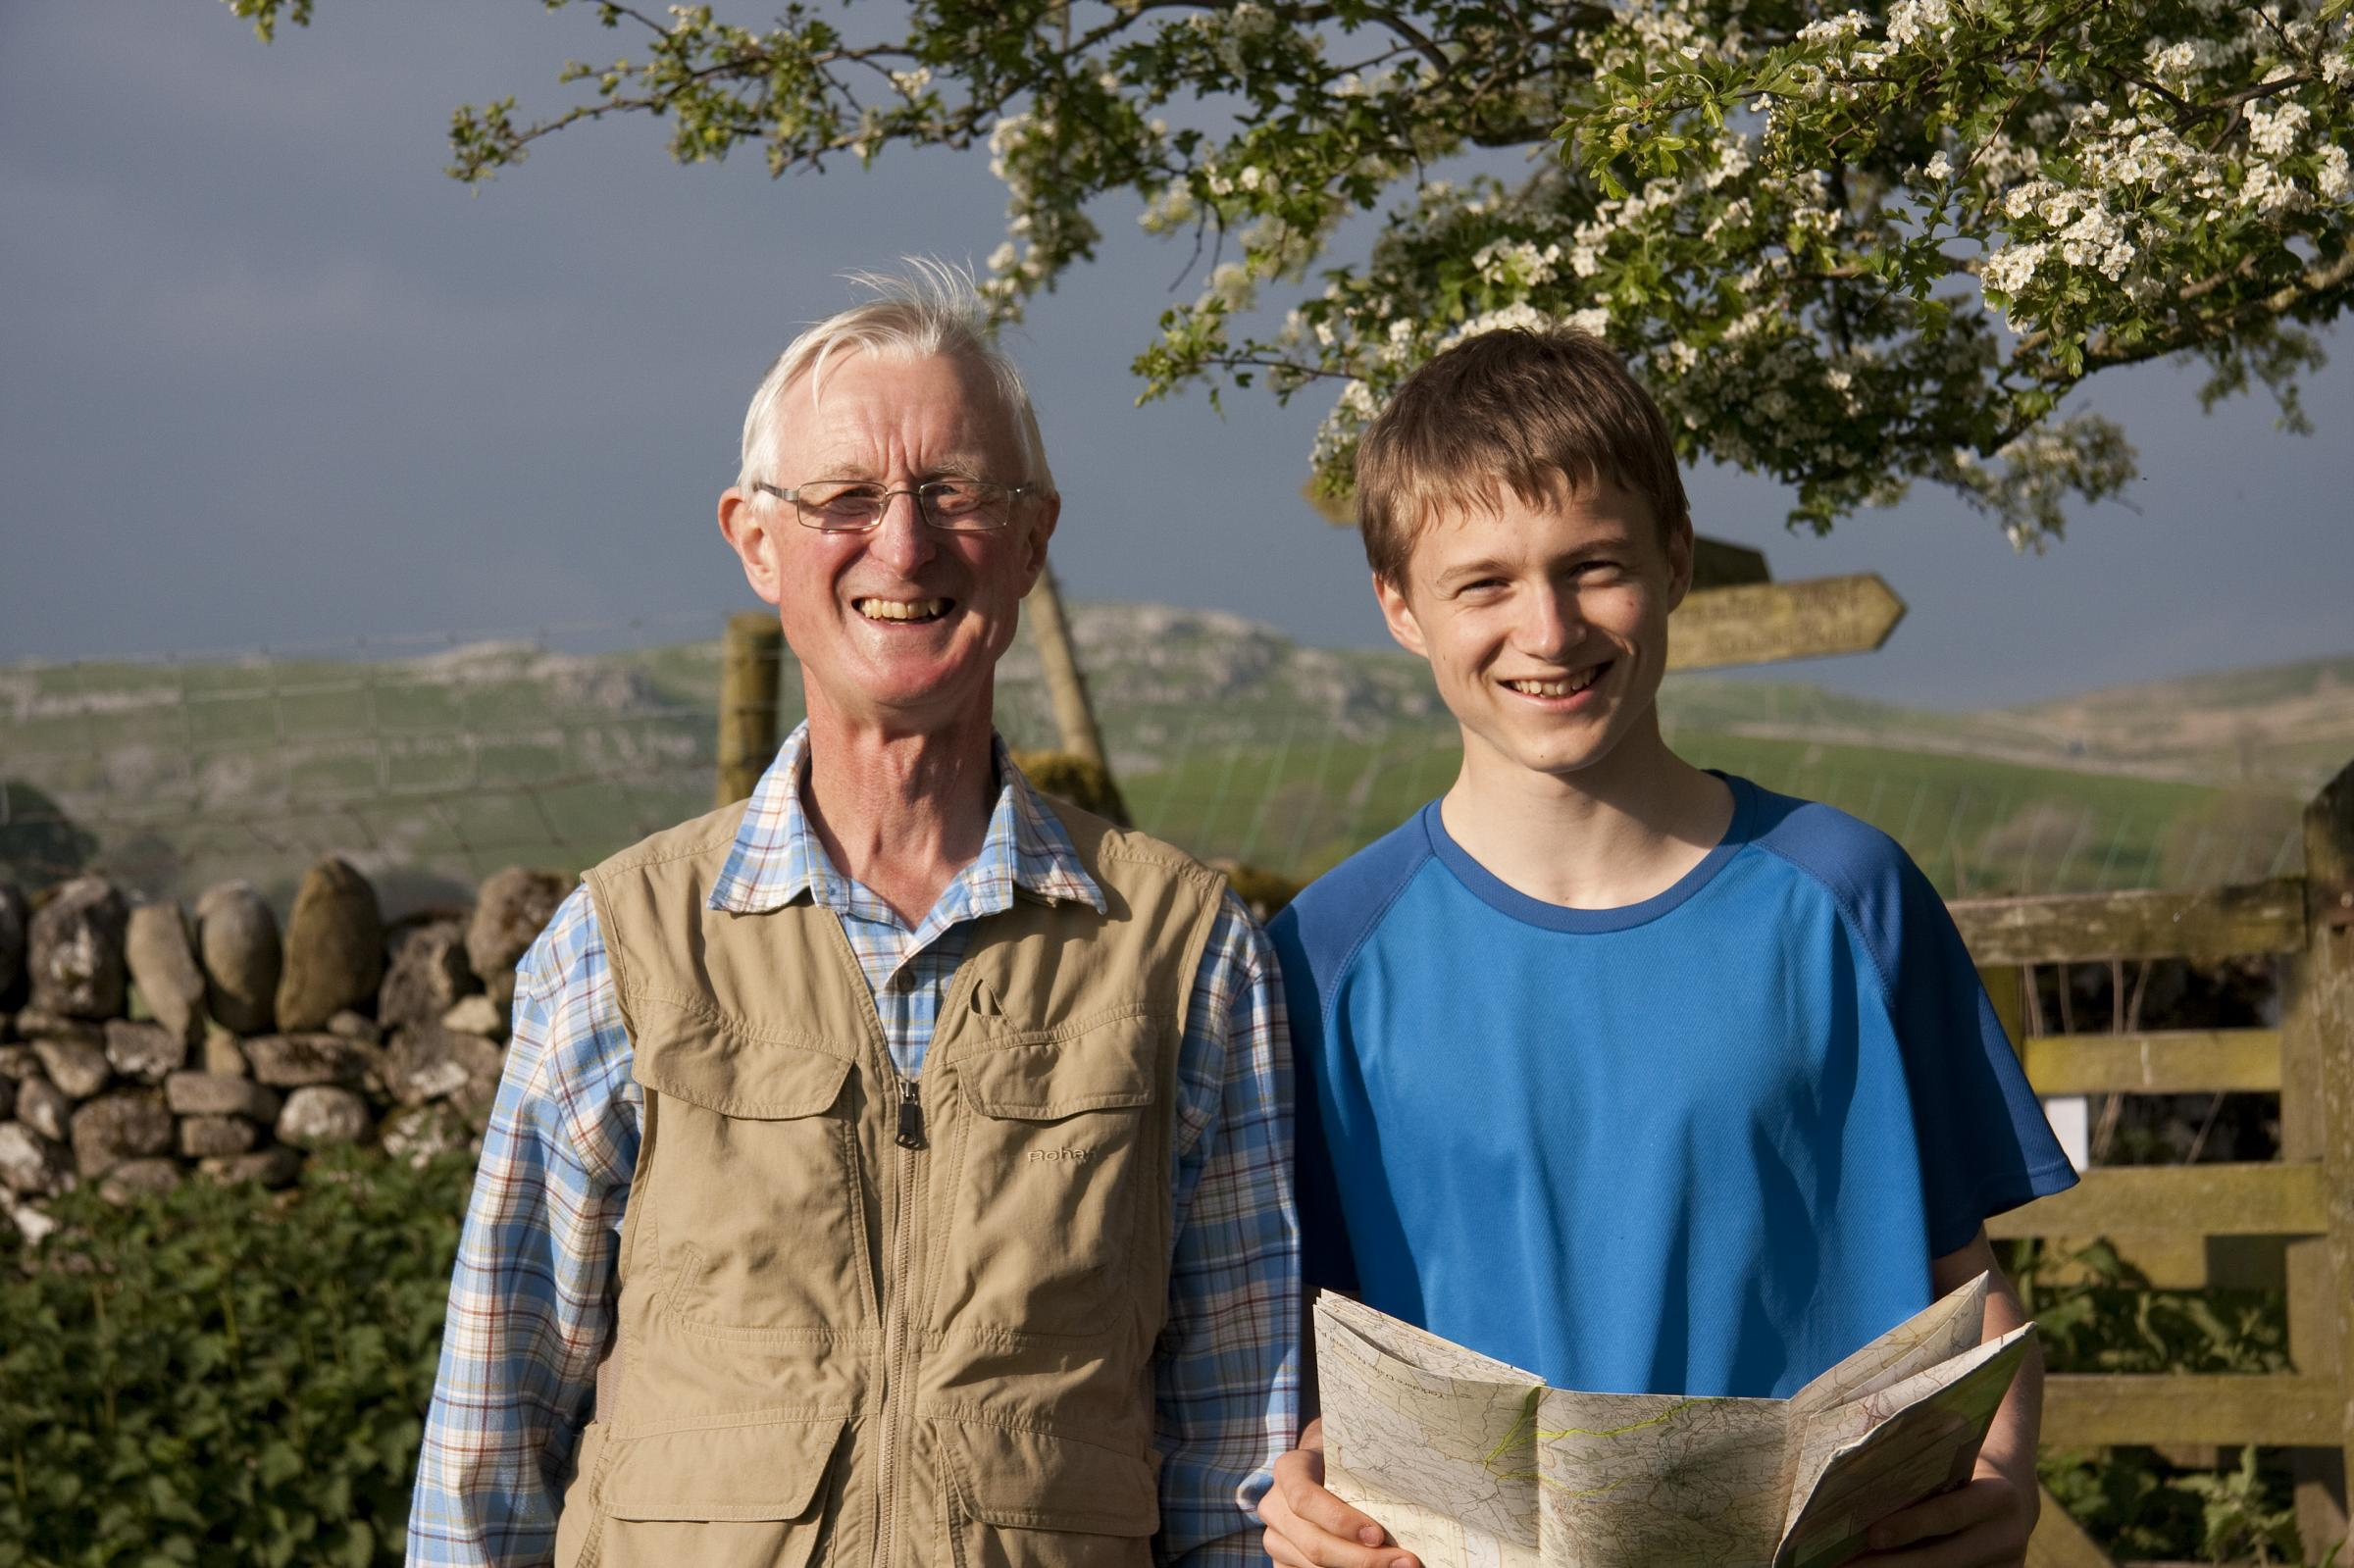 Tom Crossley, who is to walk the Pennine Way for the Airedale Hospital Emergency Department Appeal, and his grandfather John Asher